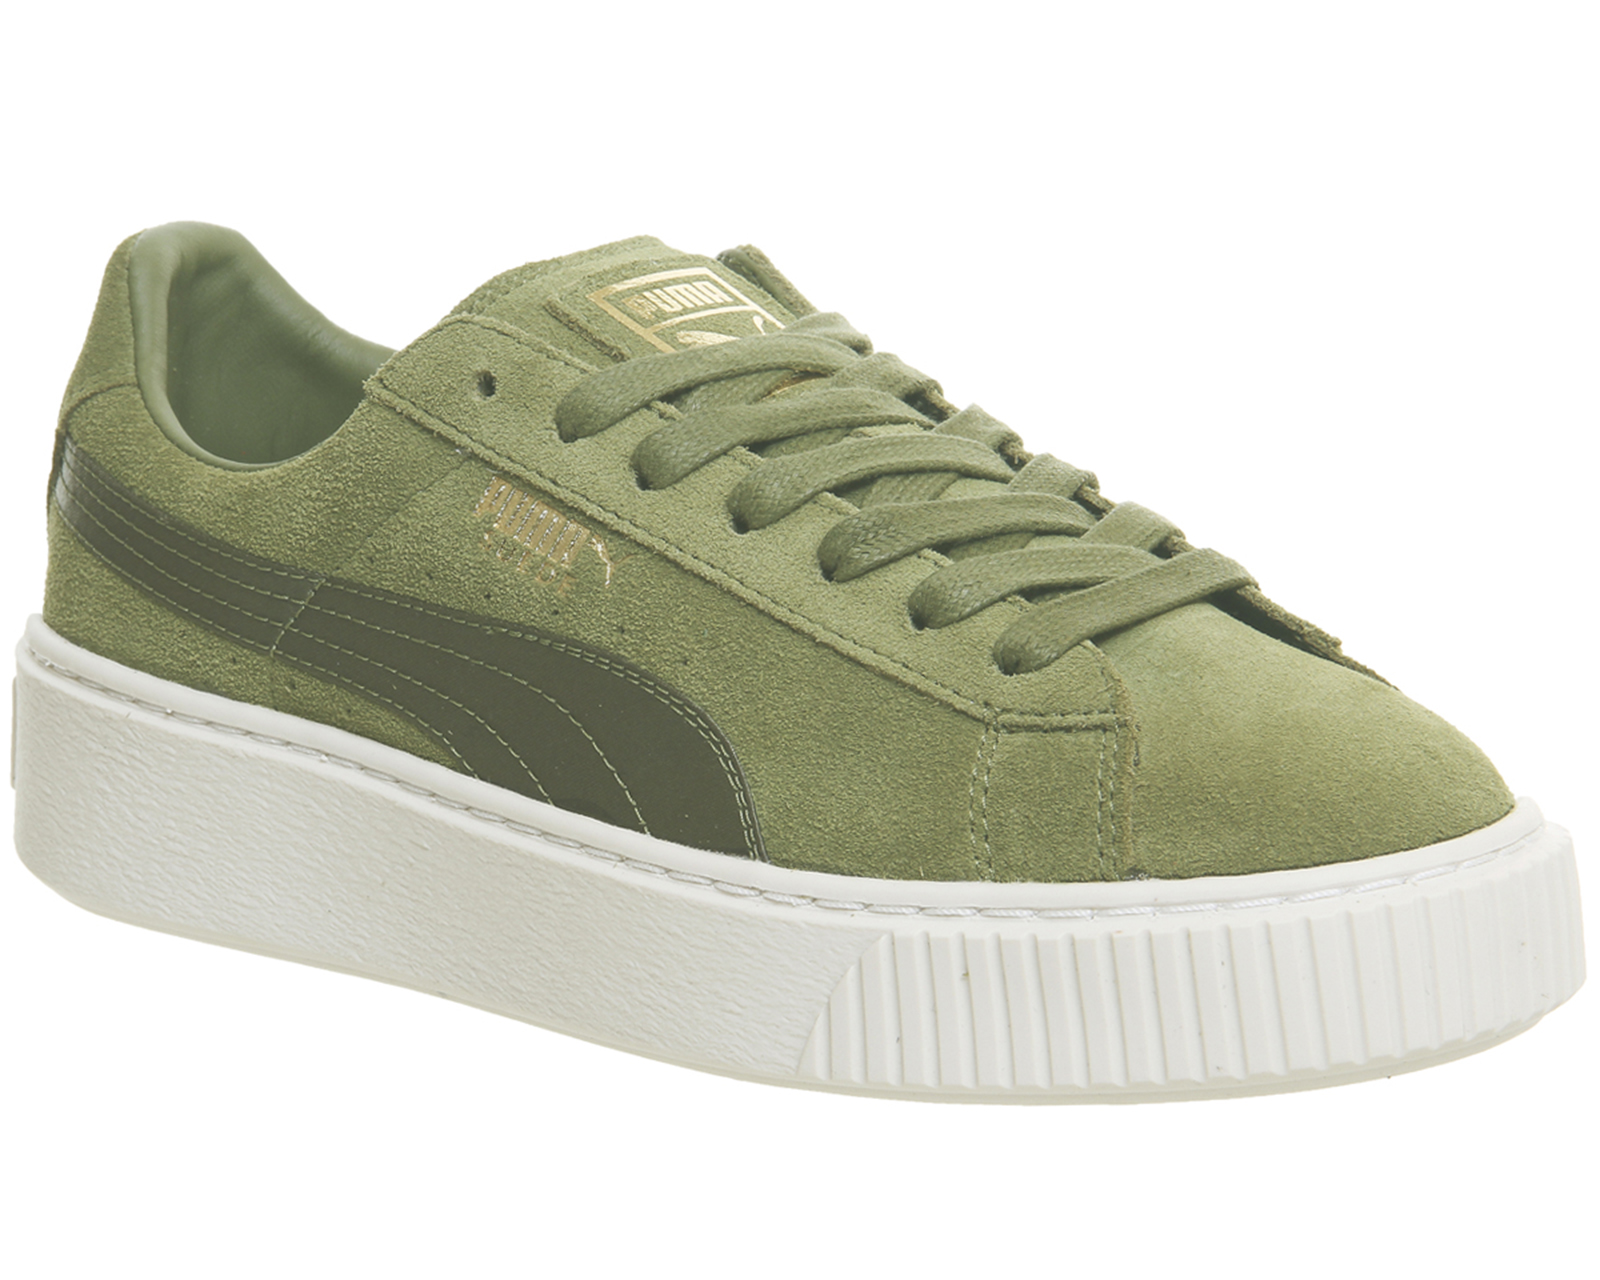 Womens Puma Green Suede Lace up Size UK 4  Ex Display 4057828869186 ... a7c08d945